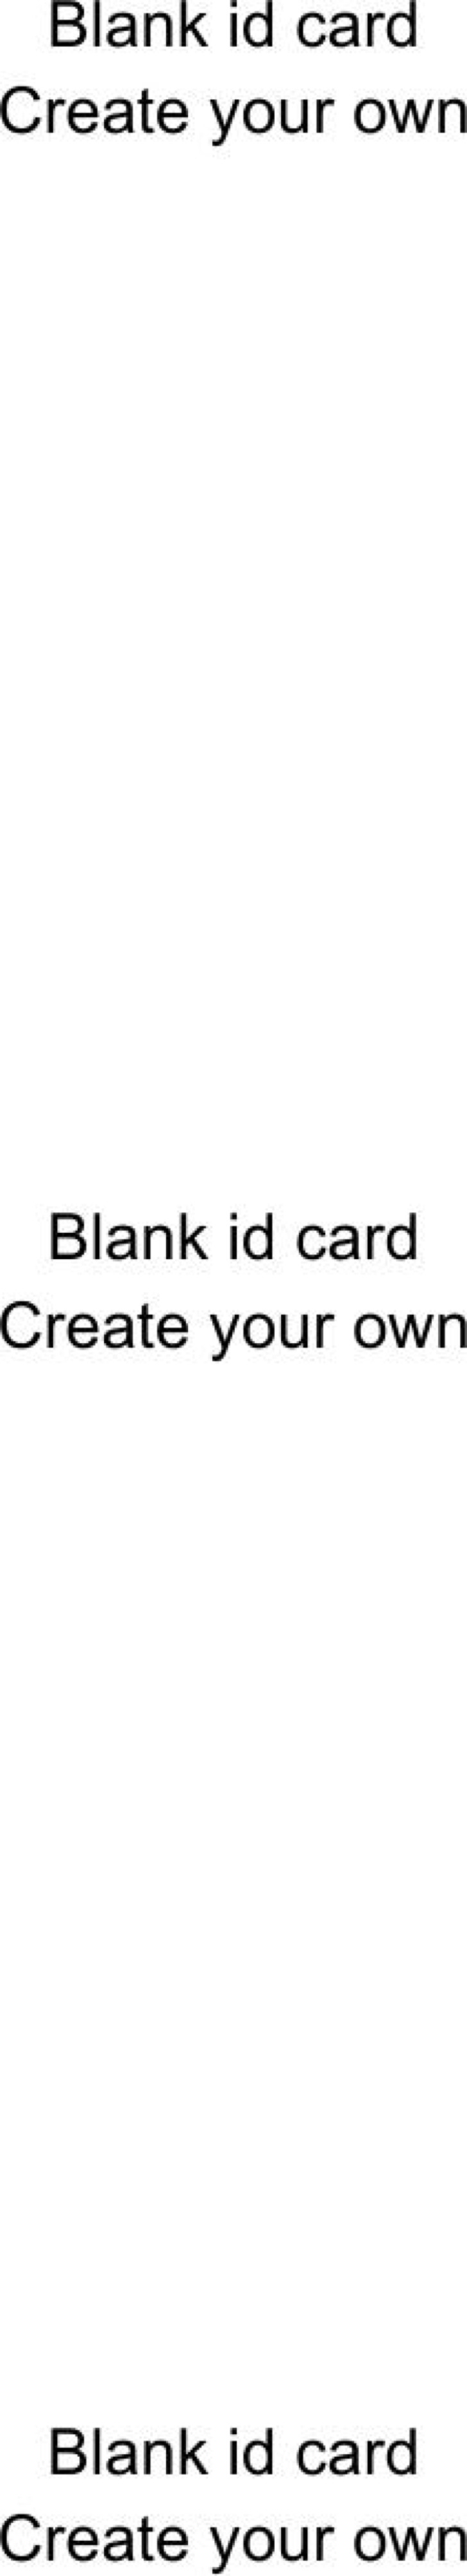 Blank Create Your Own Id Card